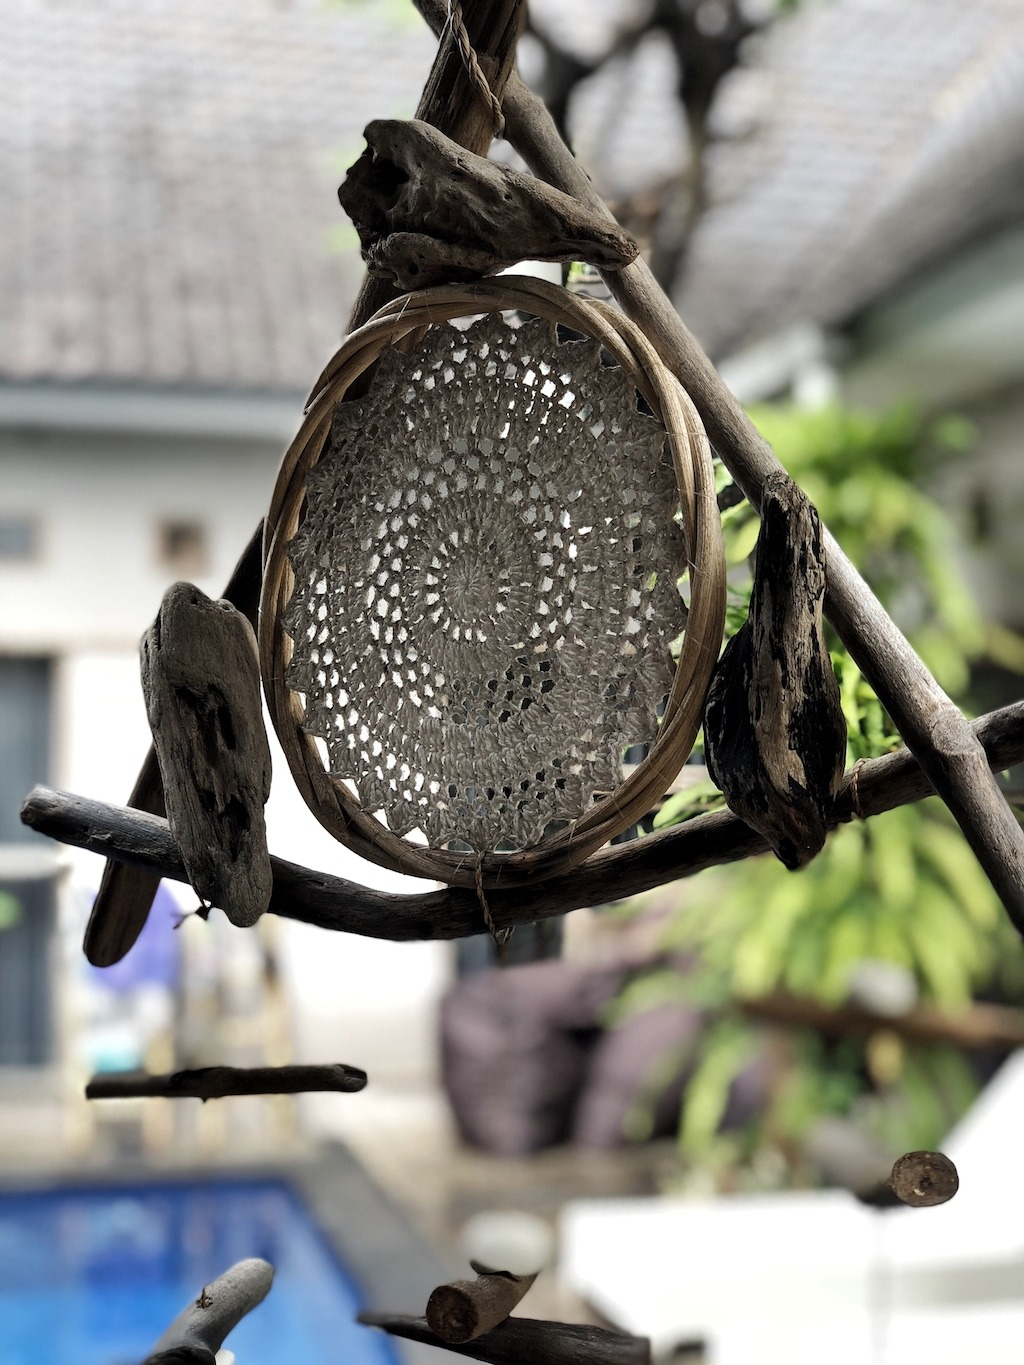 Hostel Recommendation While Travelling to Kuta – Lokal Bali Hostel Dream Catcher